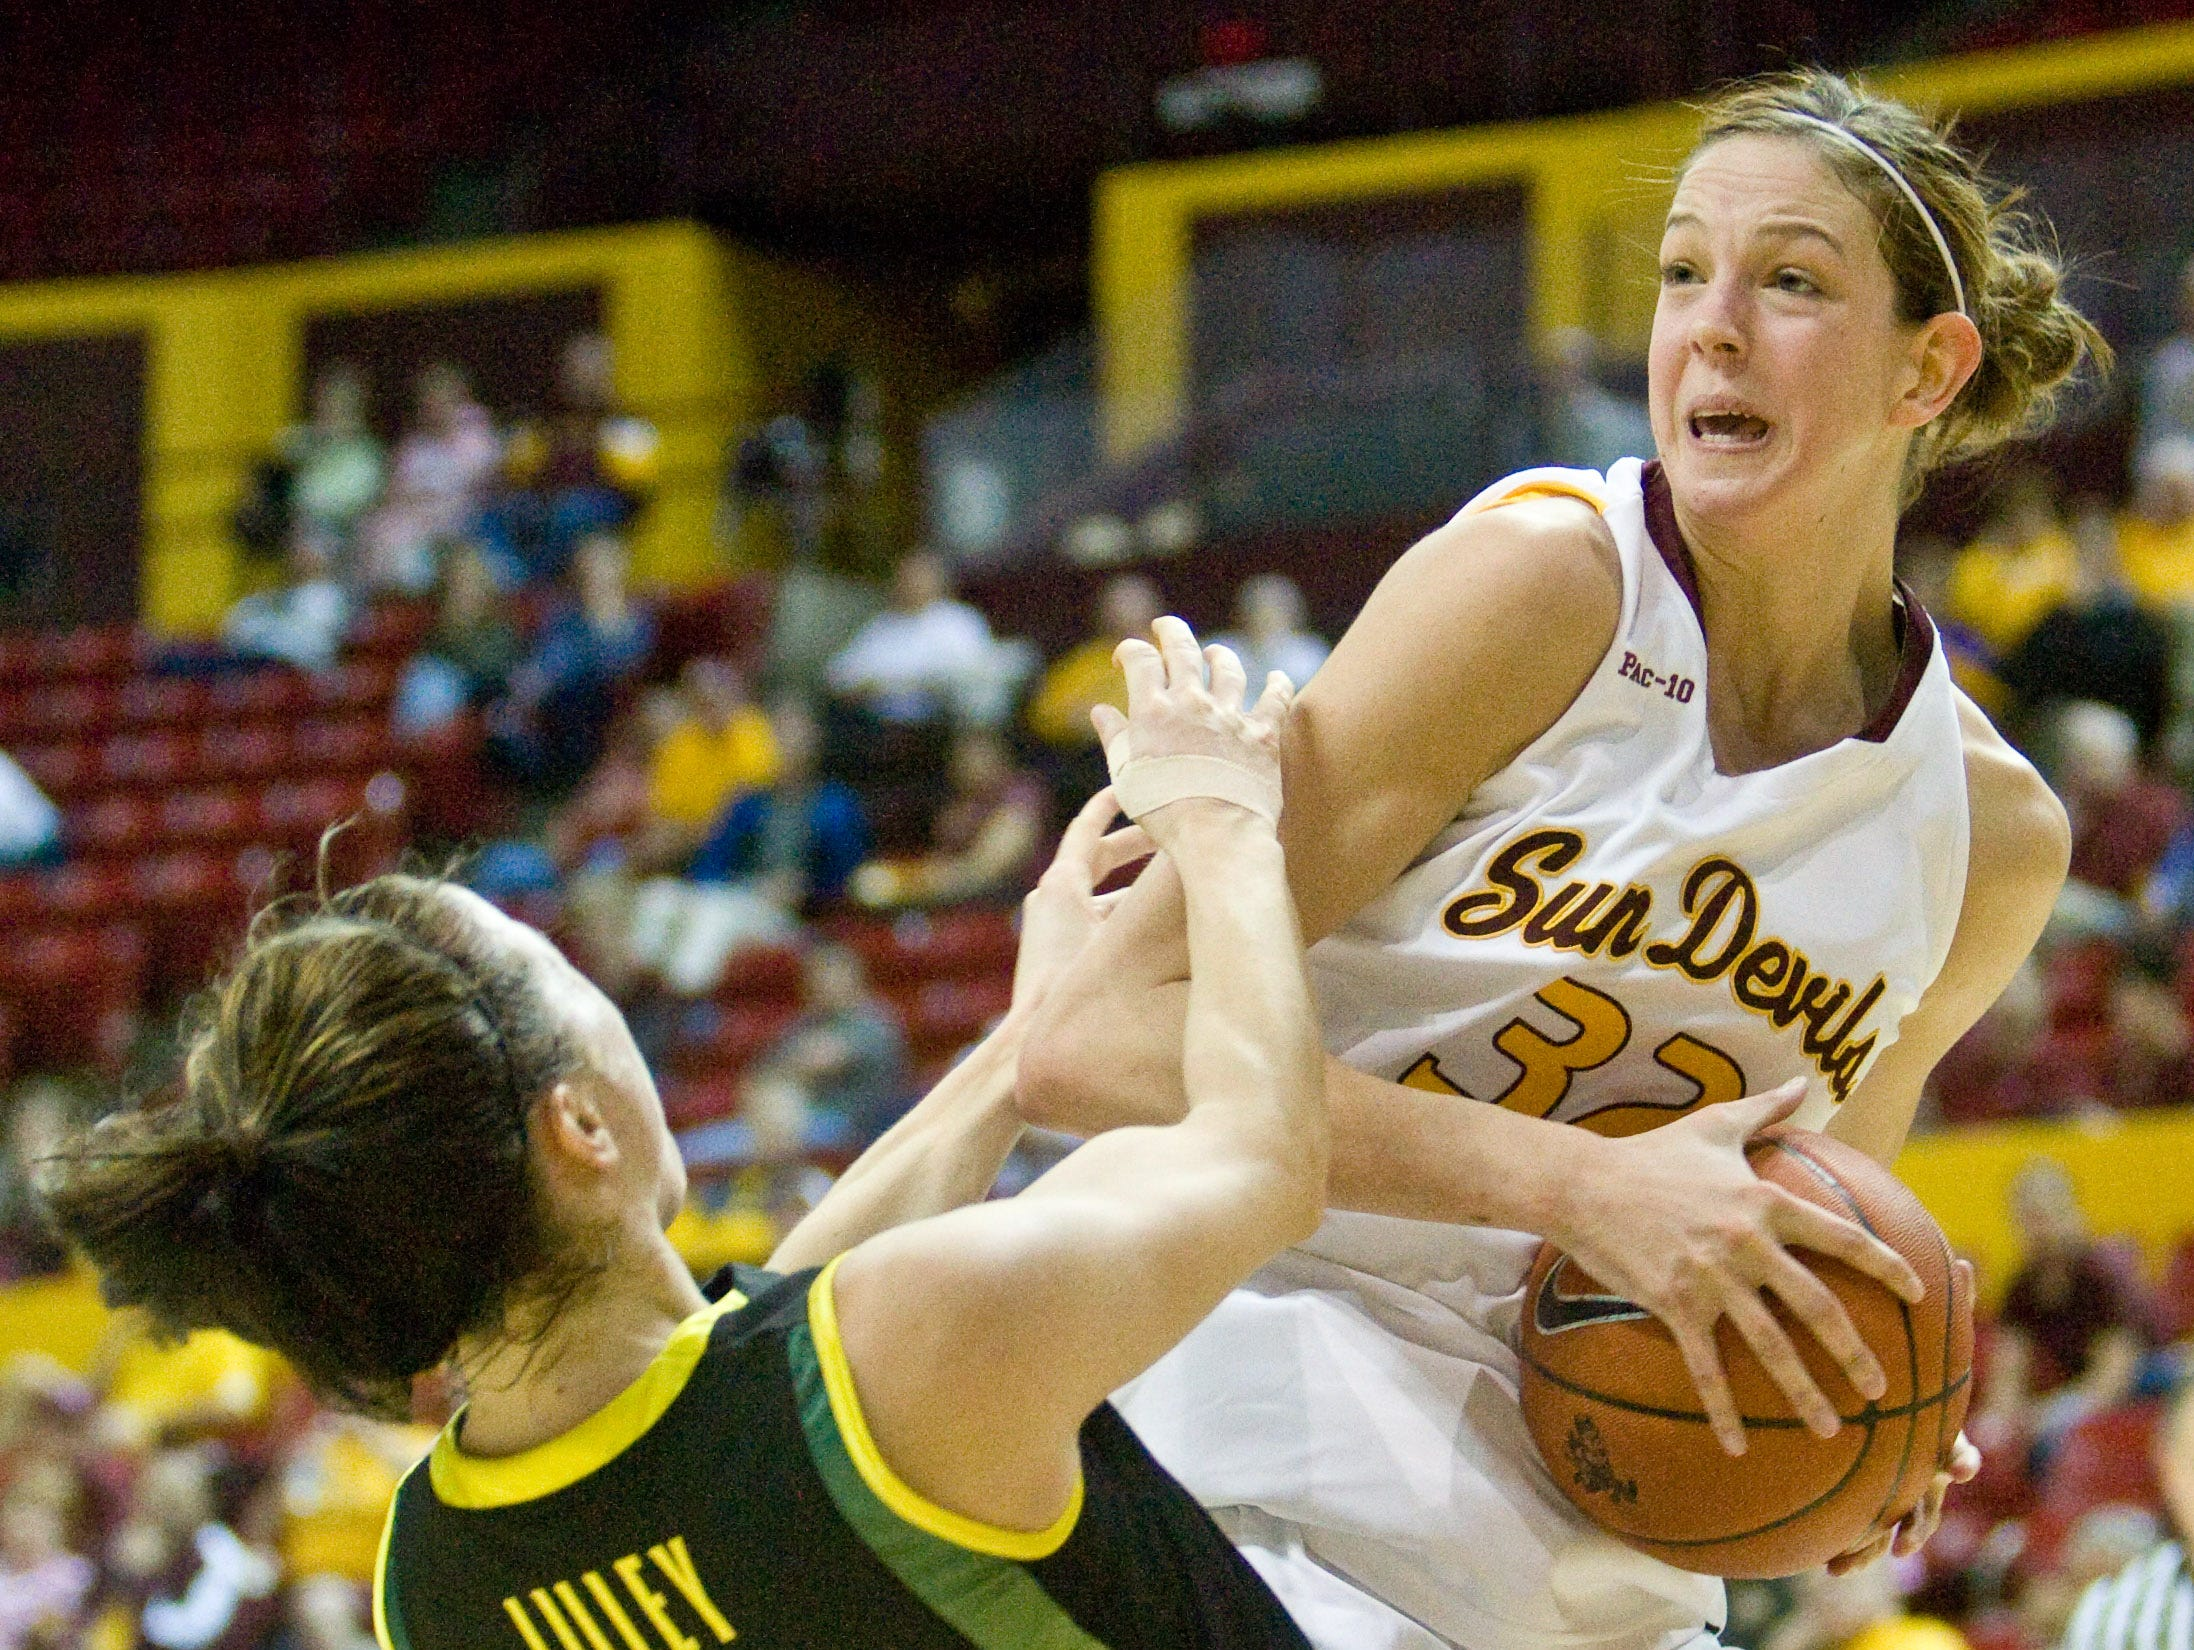 Becca Tobin went on to play at Arizona State University after winning championships at Glendale Cactus High School.